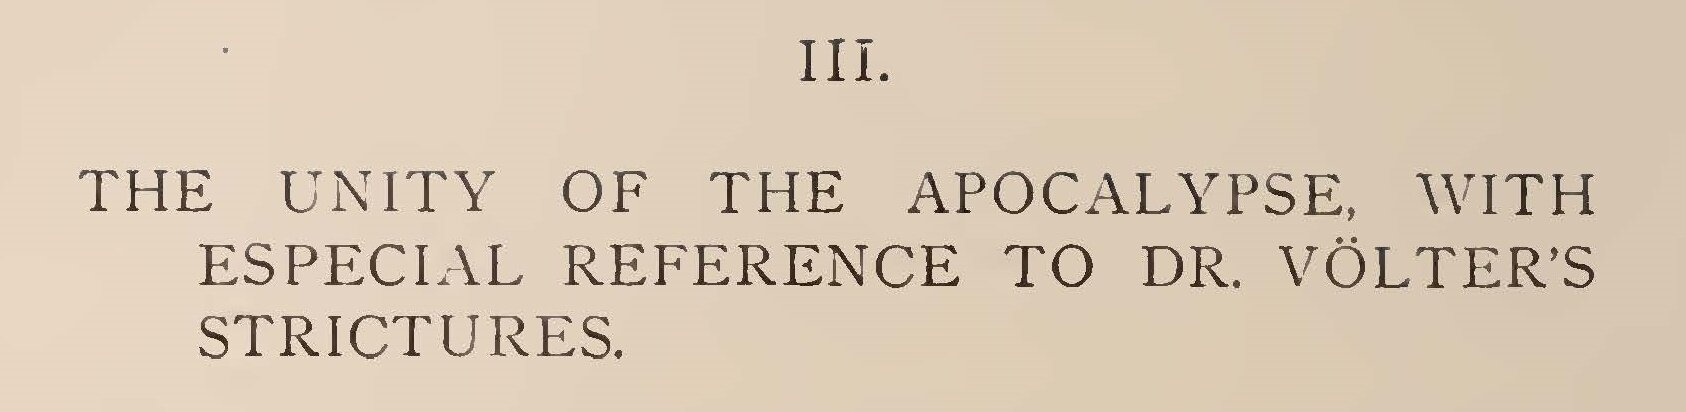 Warfield, Benjamin Breckinridge, The Unity of the Apocalypse Title Page.jpg